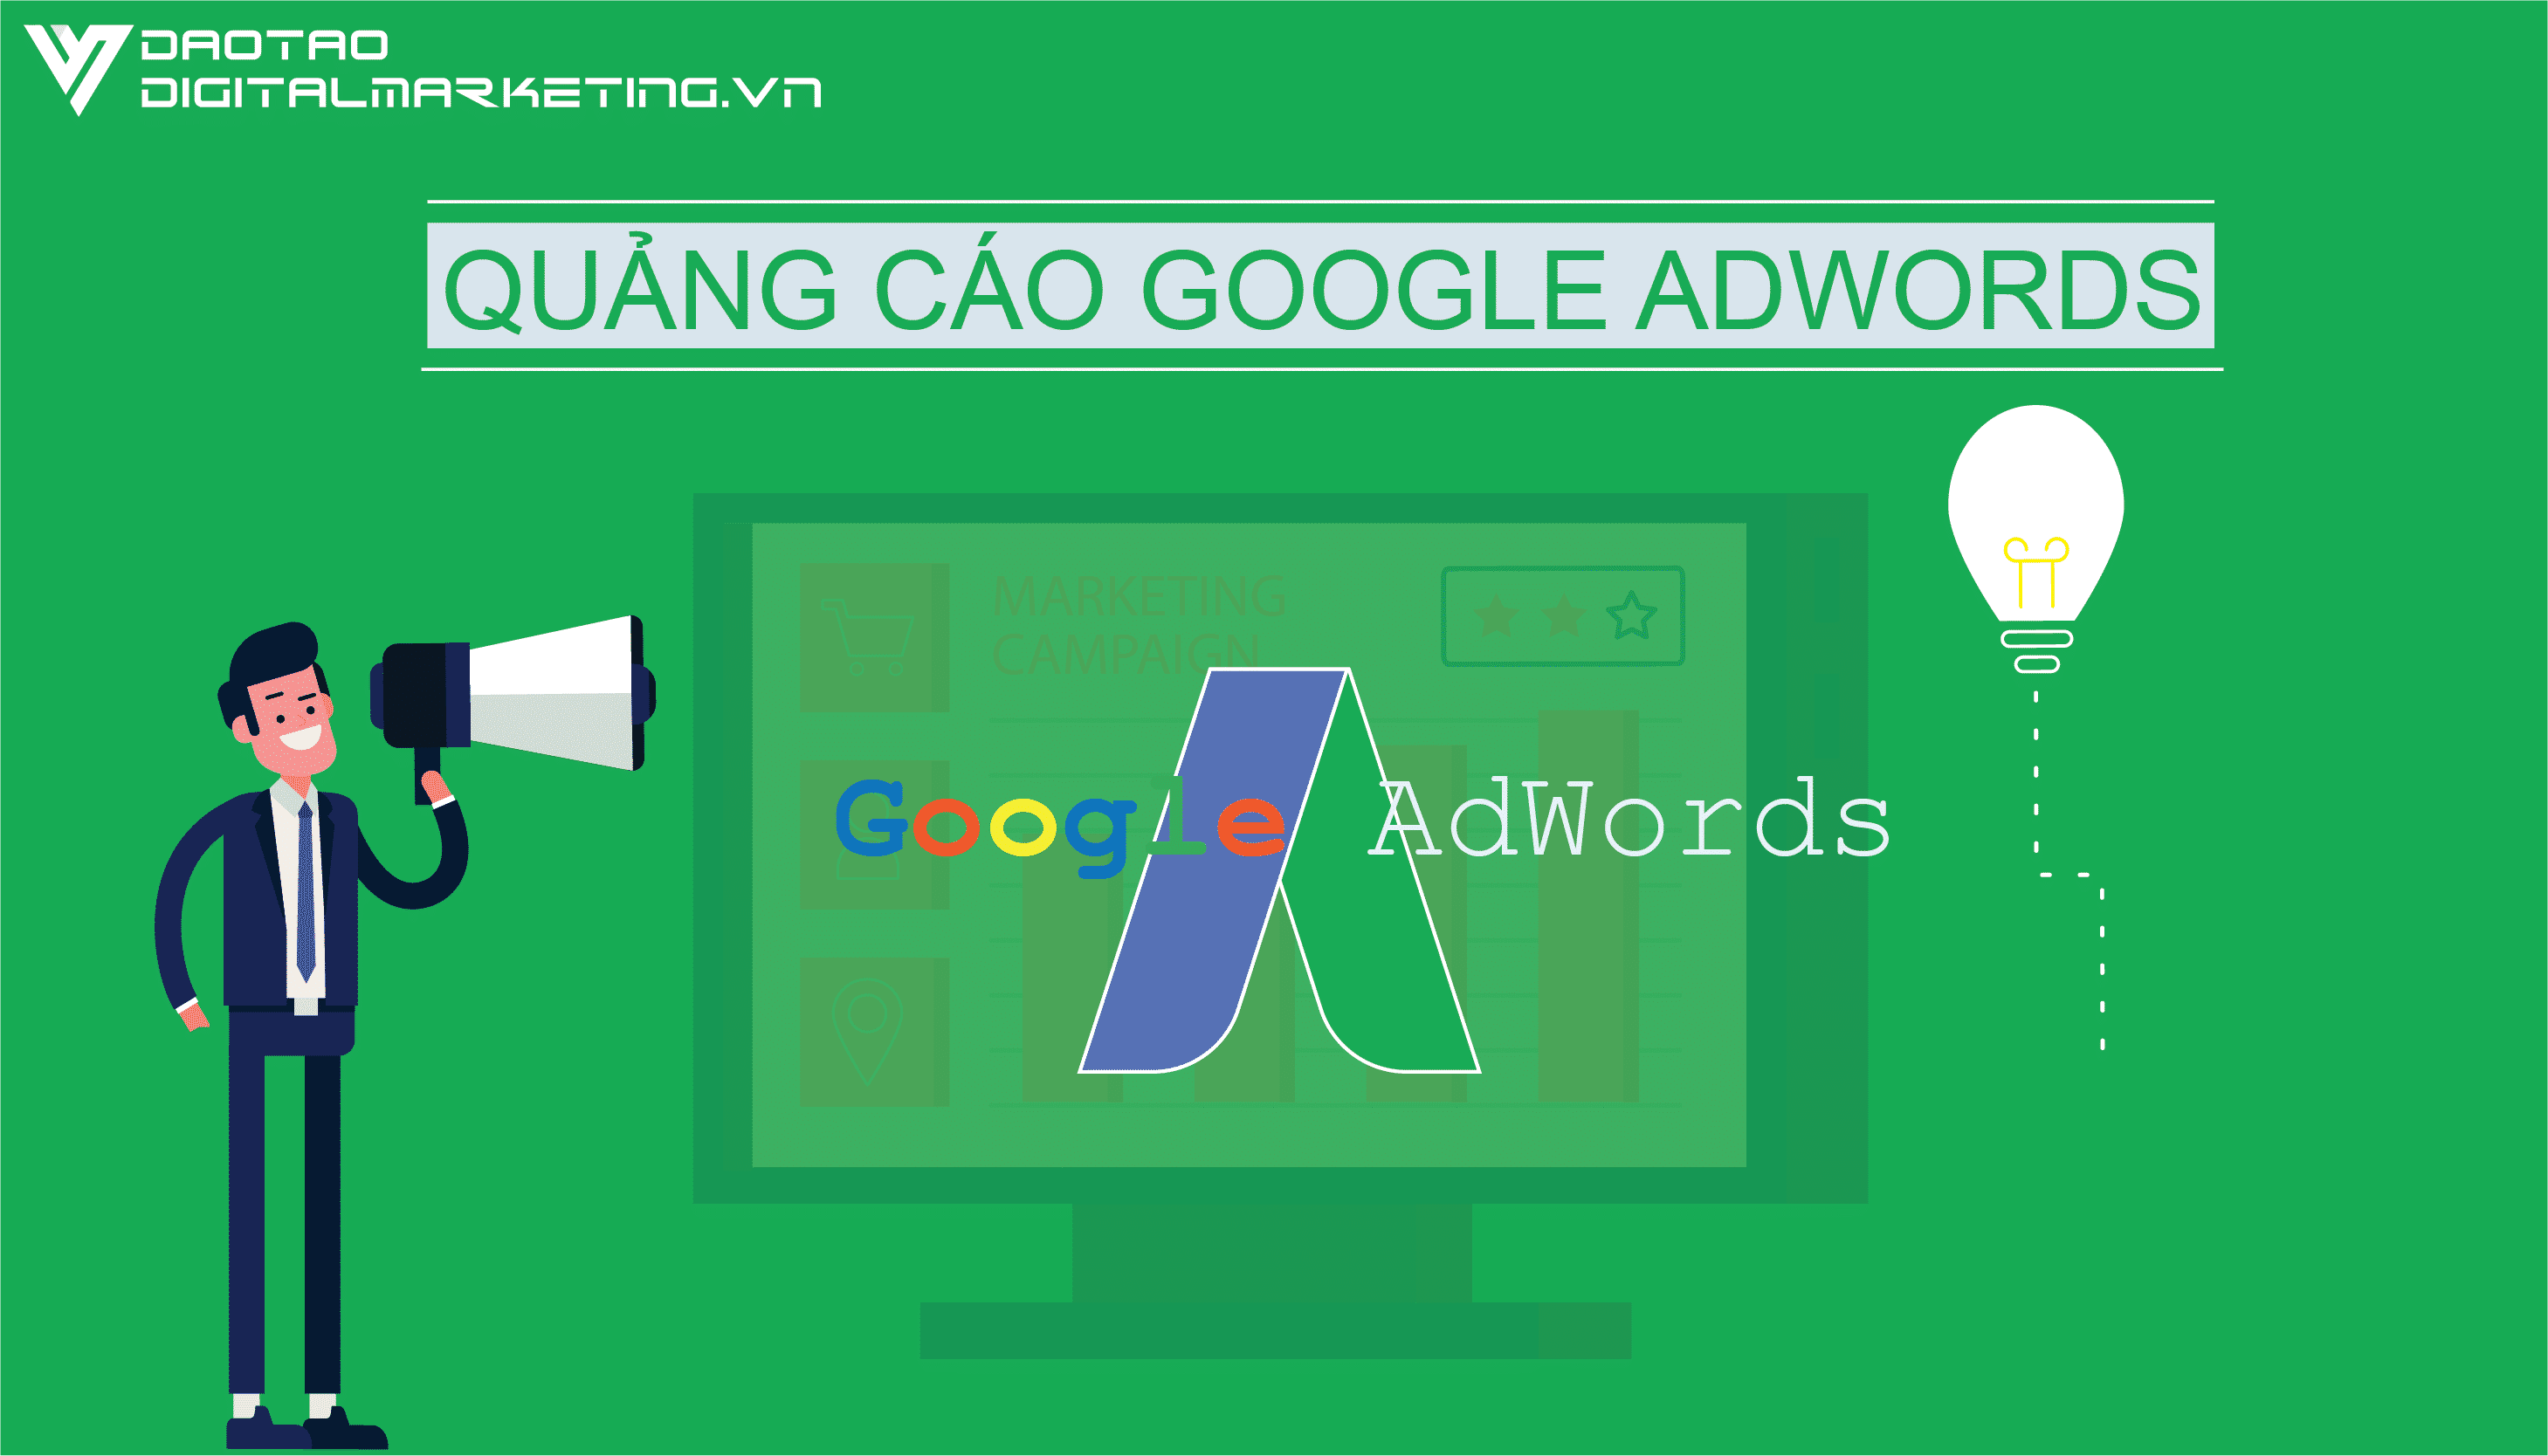 Google-adwords-dao-tao-digital-marketing